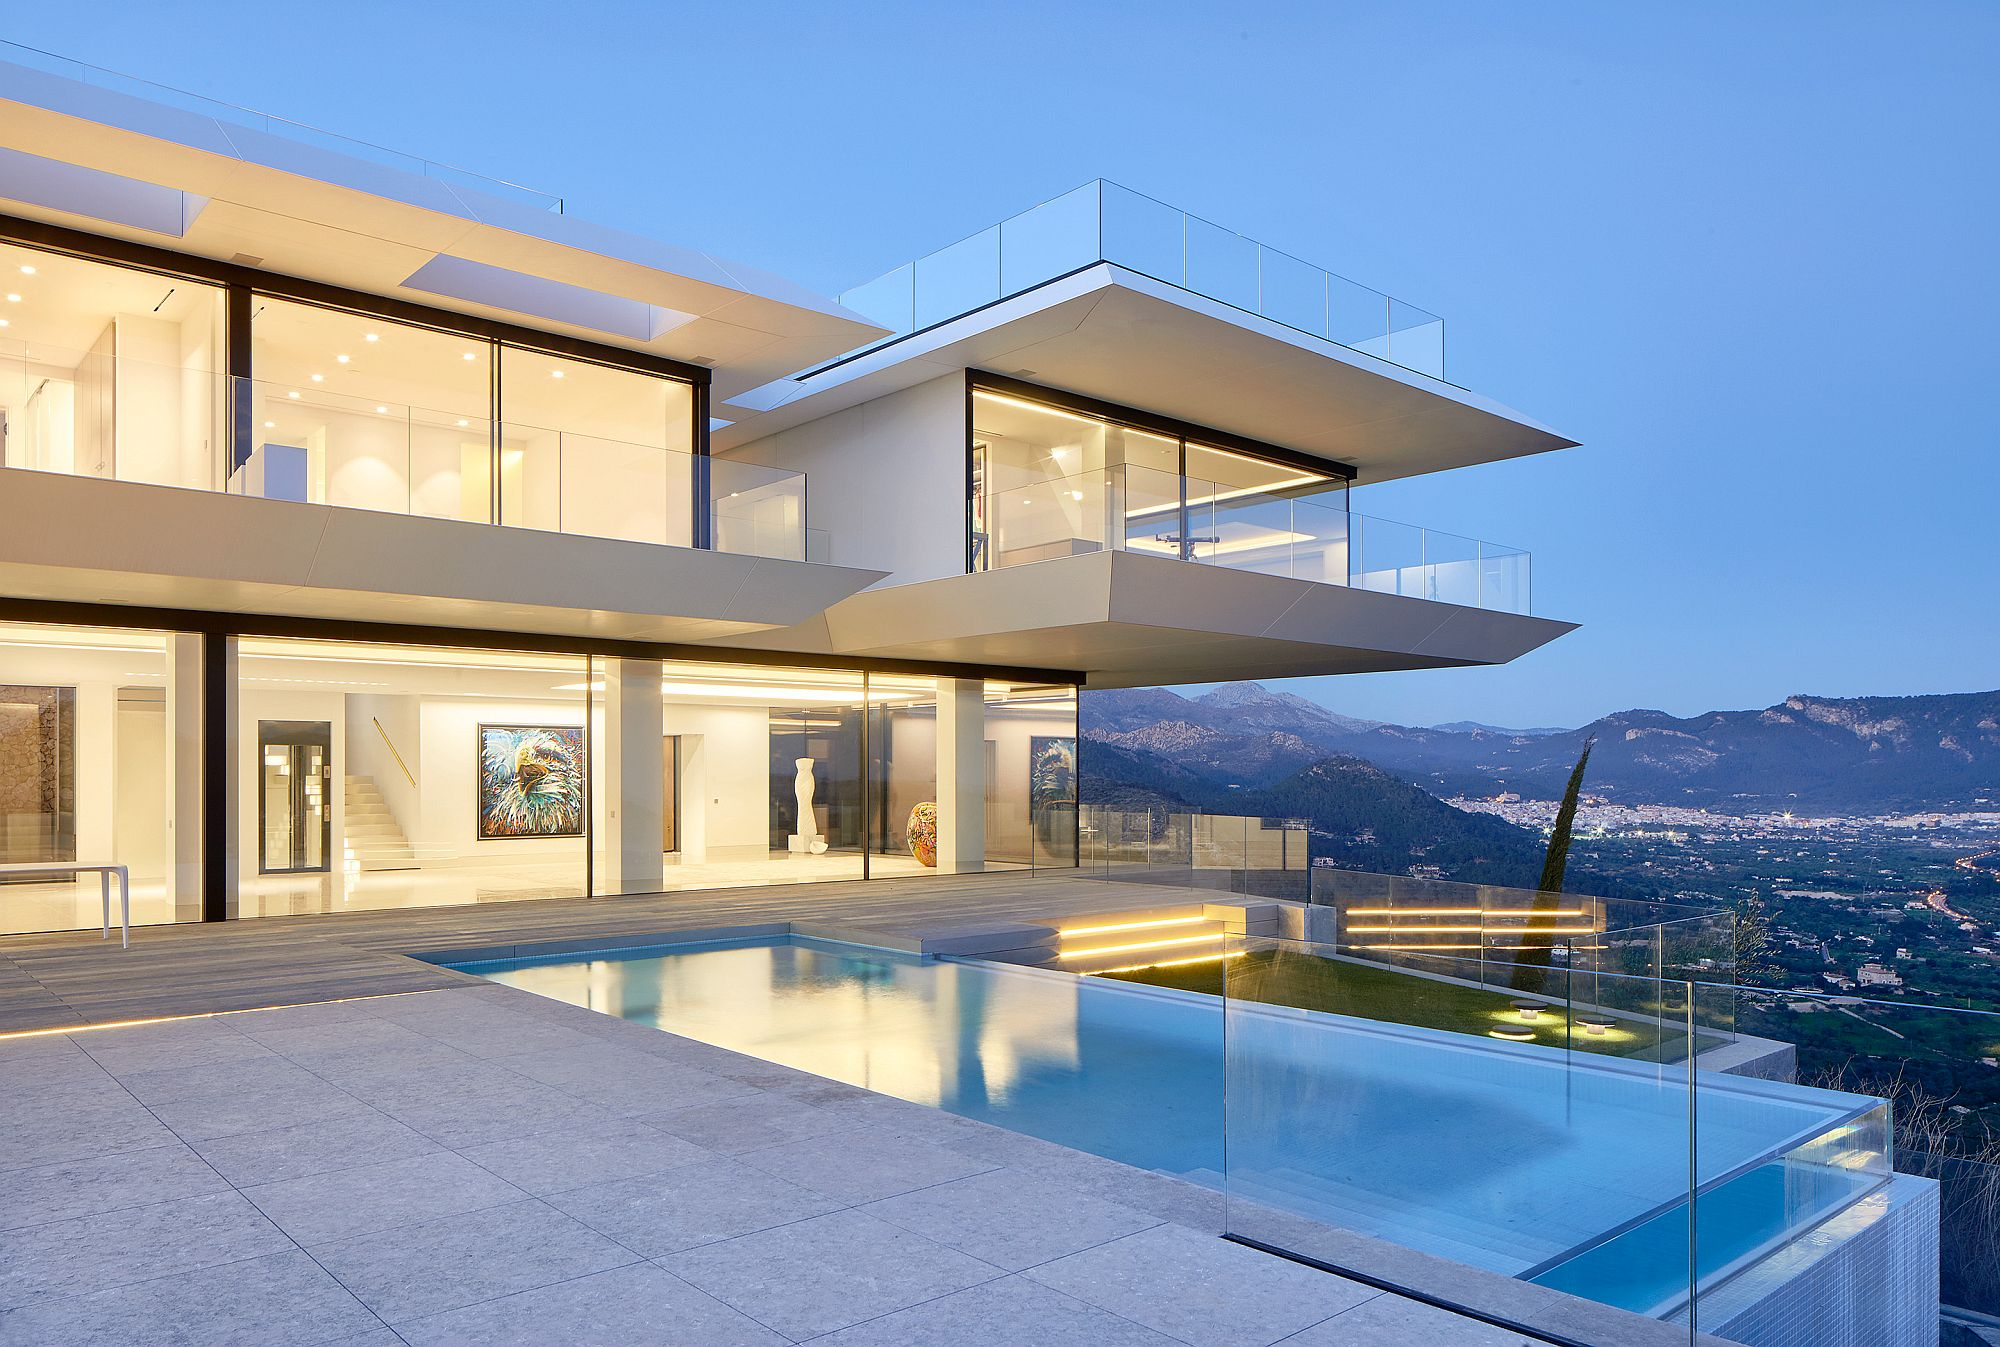 Mesmerizing-deck-and-pool-area-with-magical-views